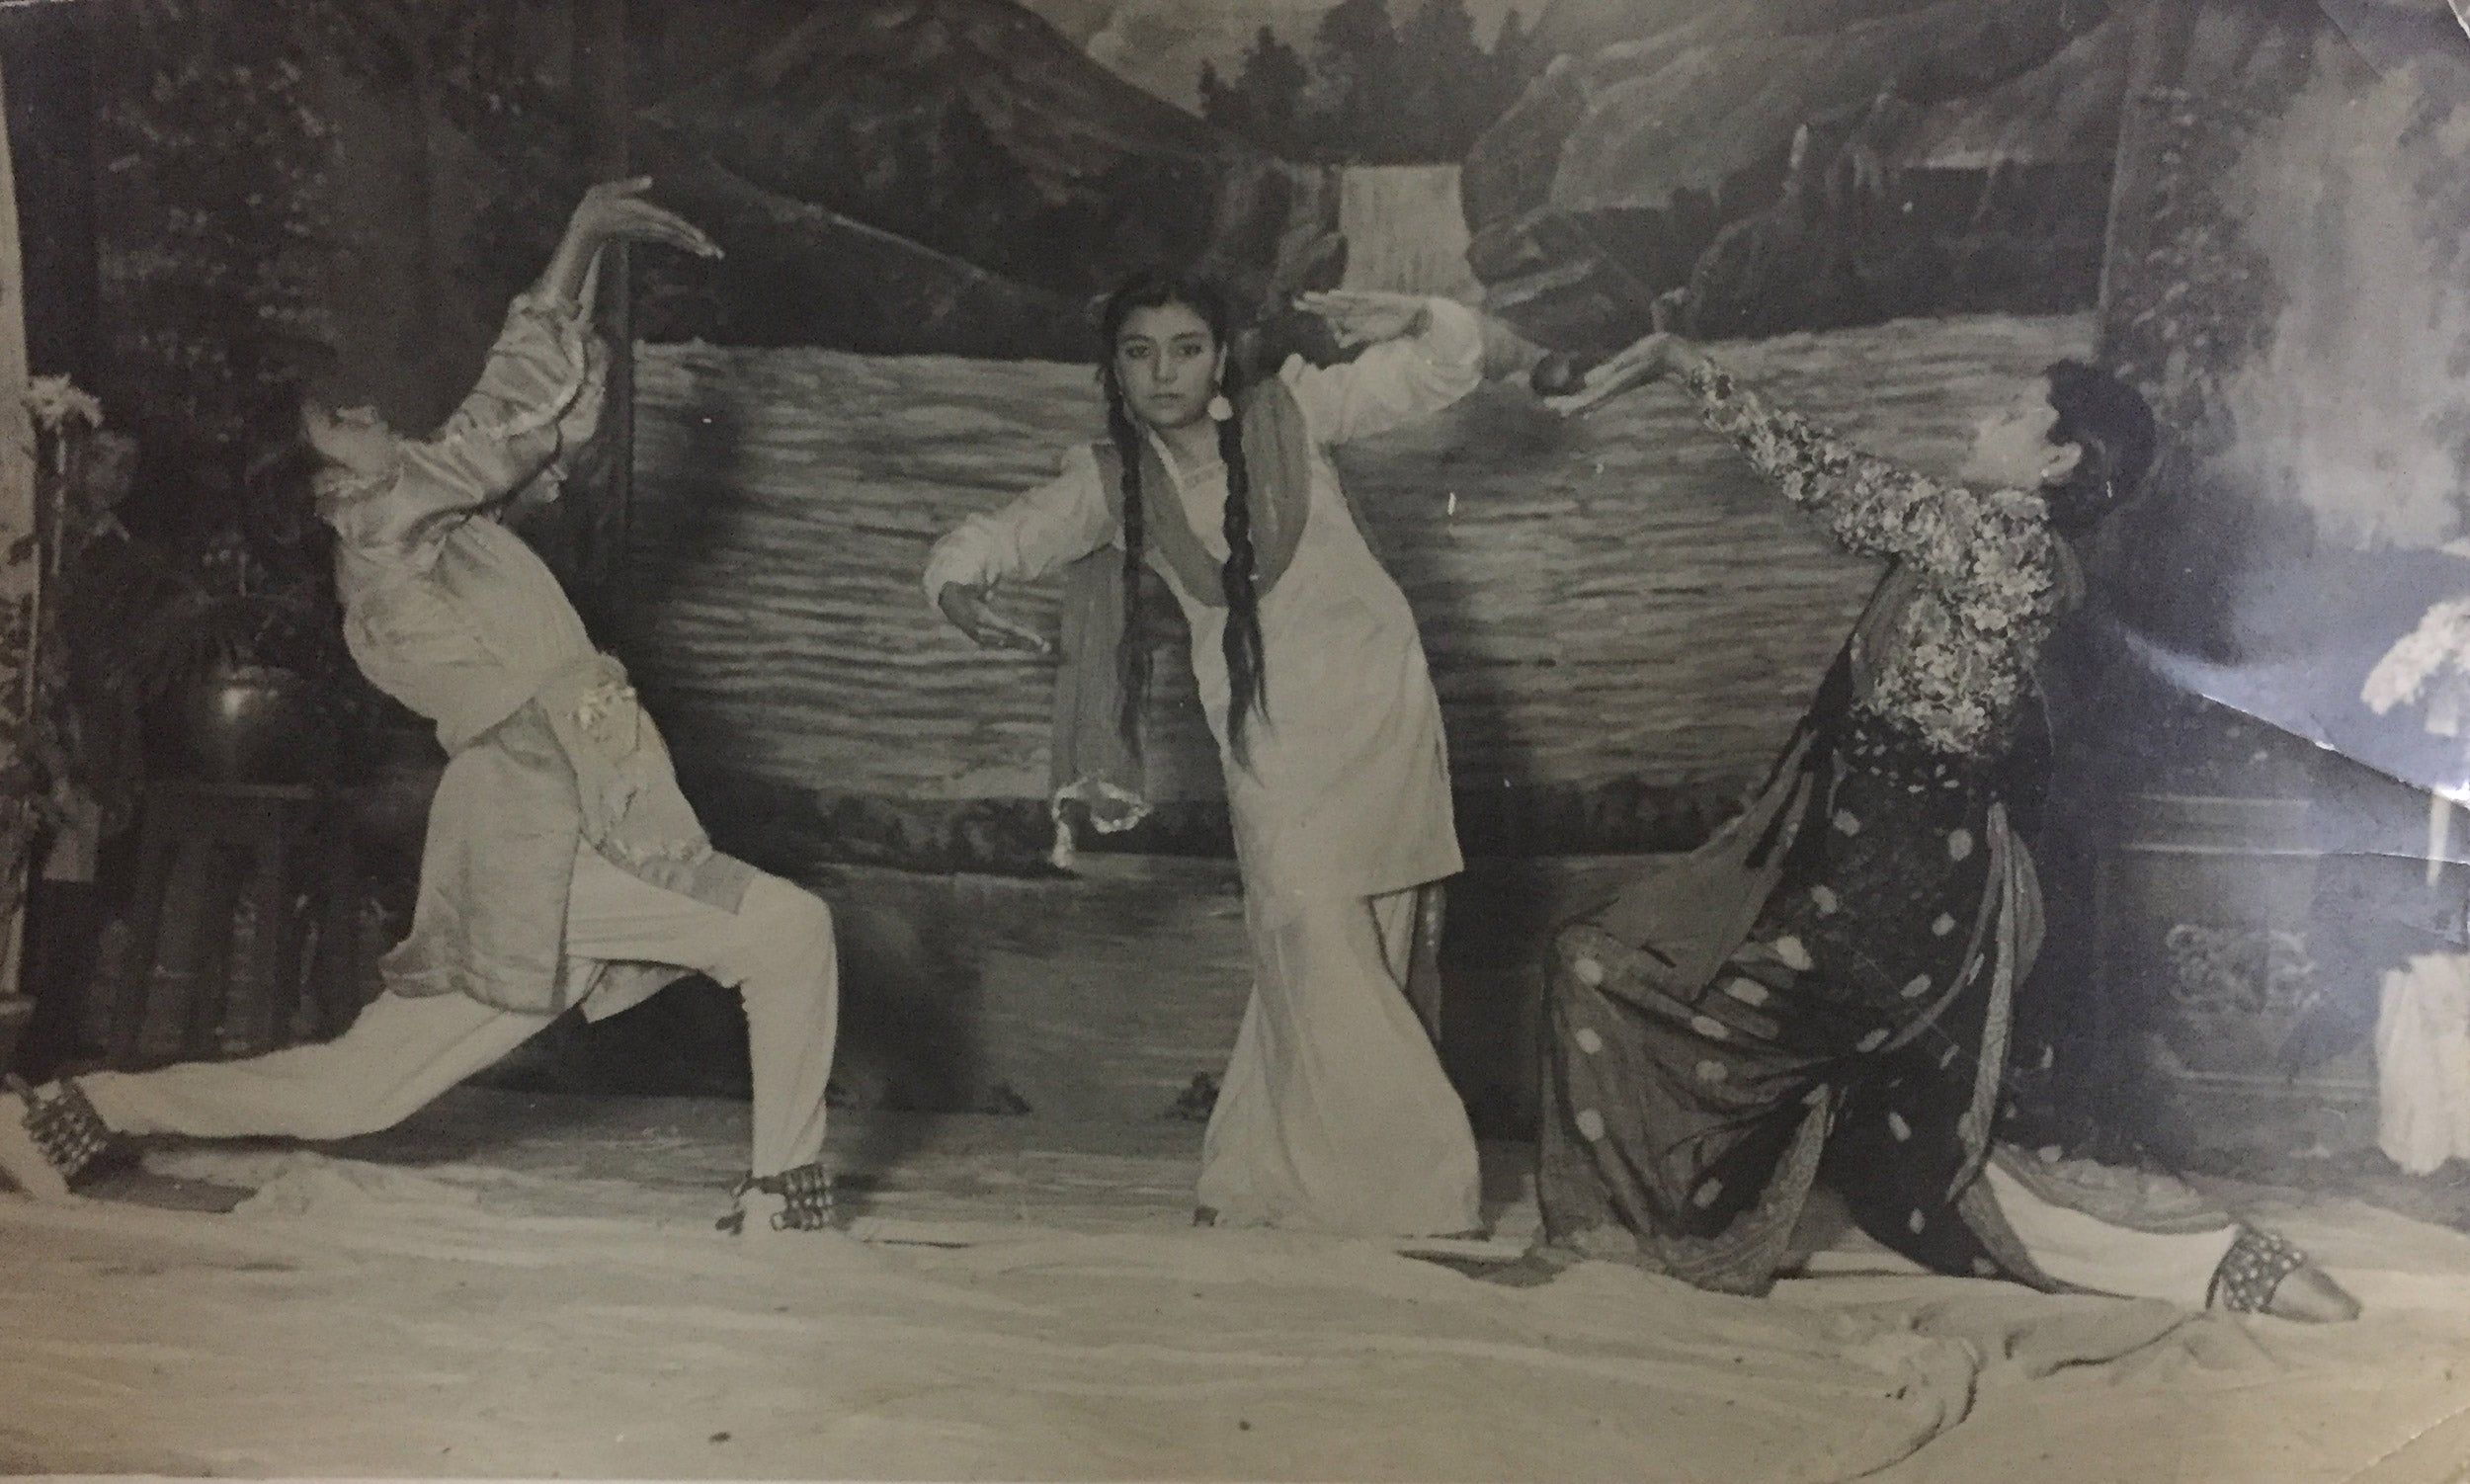 Harvard's Lakshmi Mittal South Asia Institute is examining the ramifications of the violent Partition of British India in 1947. One of SAI's interviewees, Vimla Dhingra (center), offered this photo of her performing in a play before the Partition.